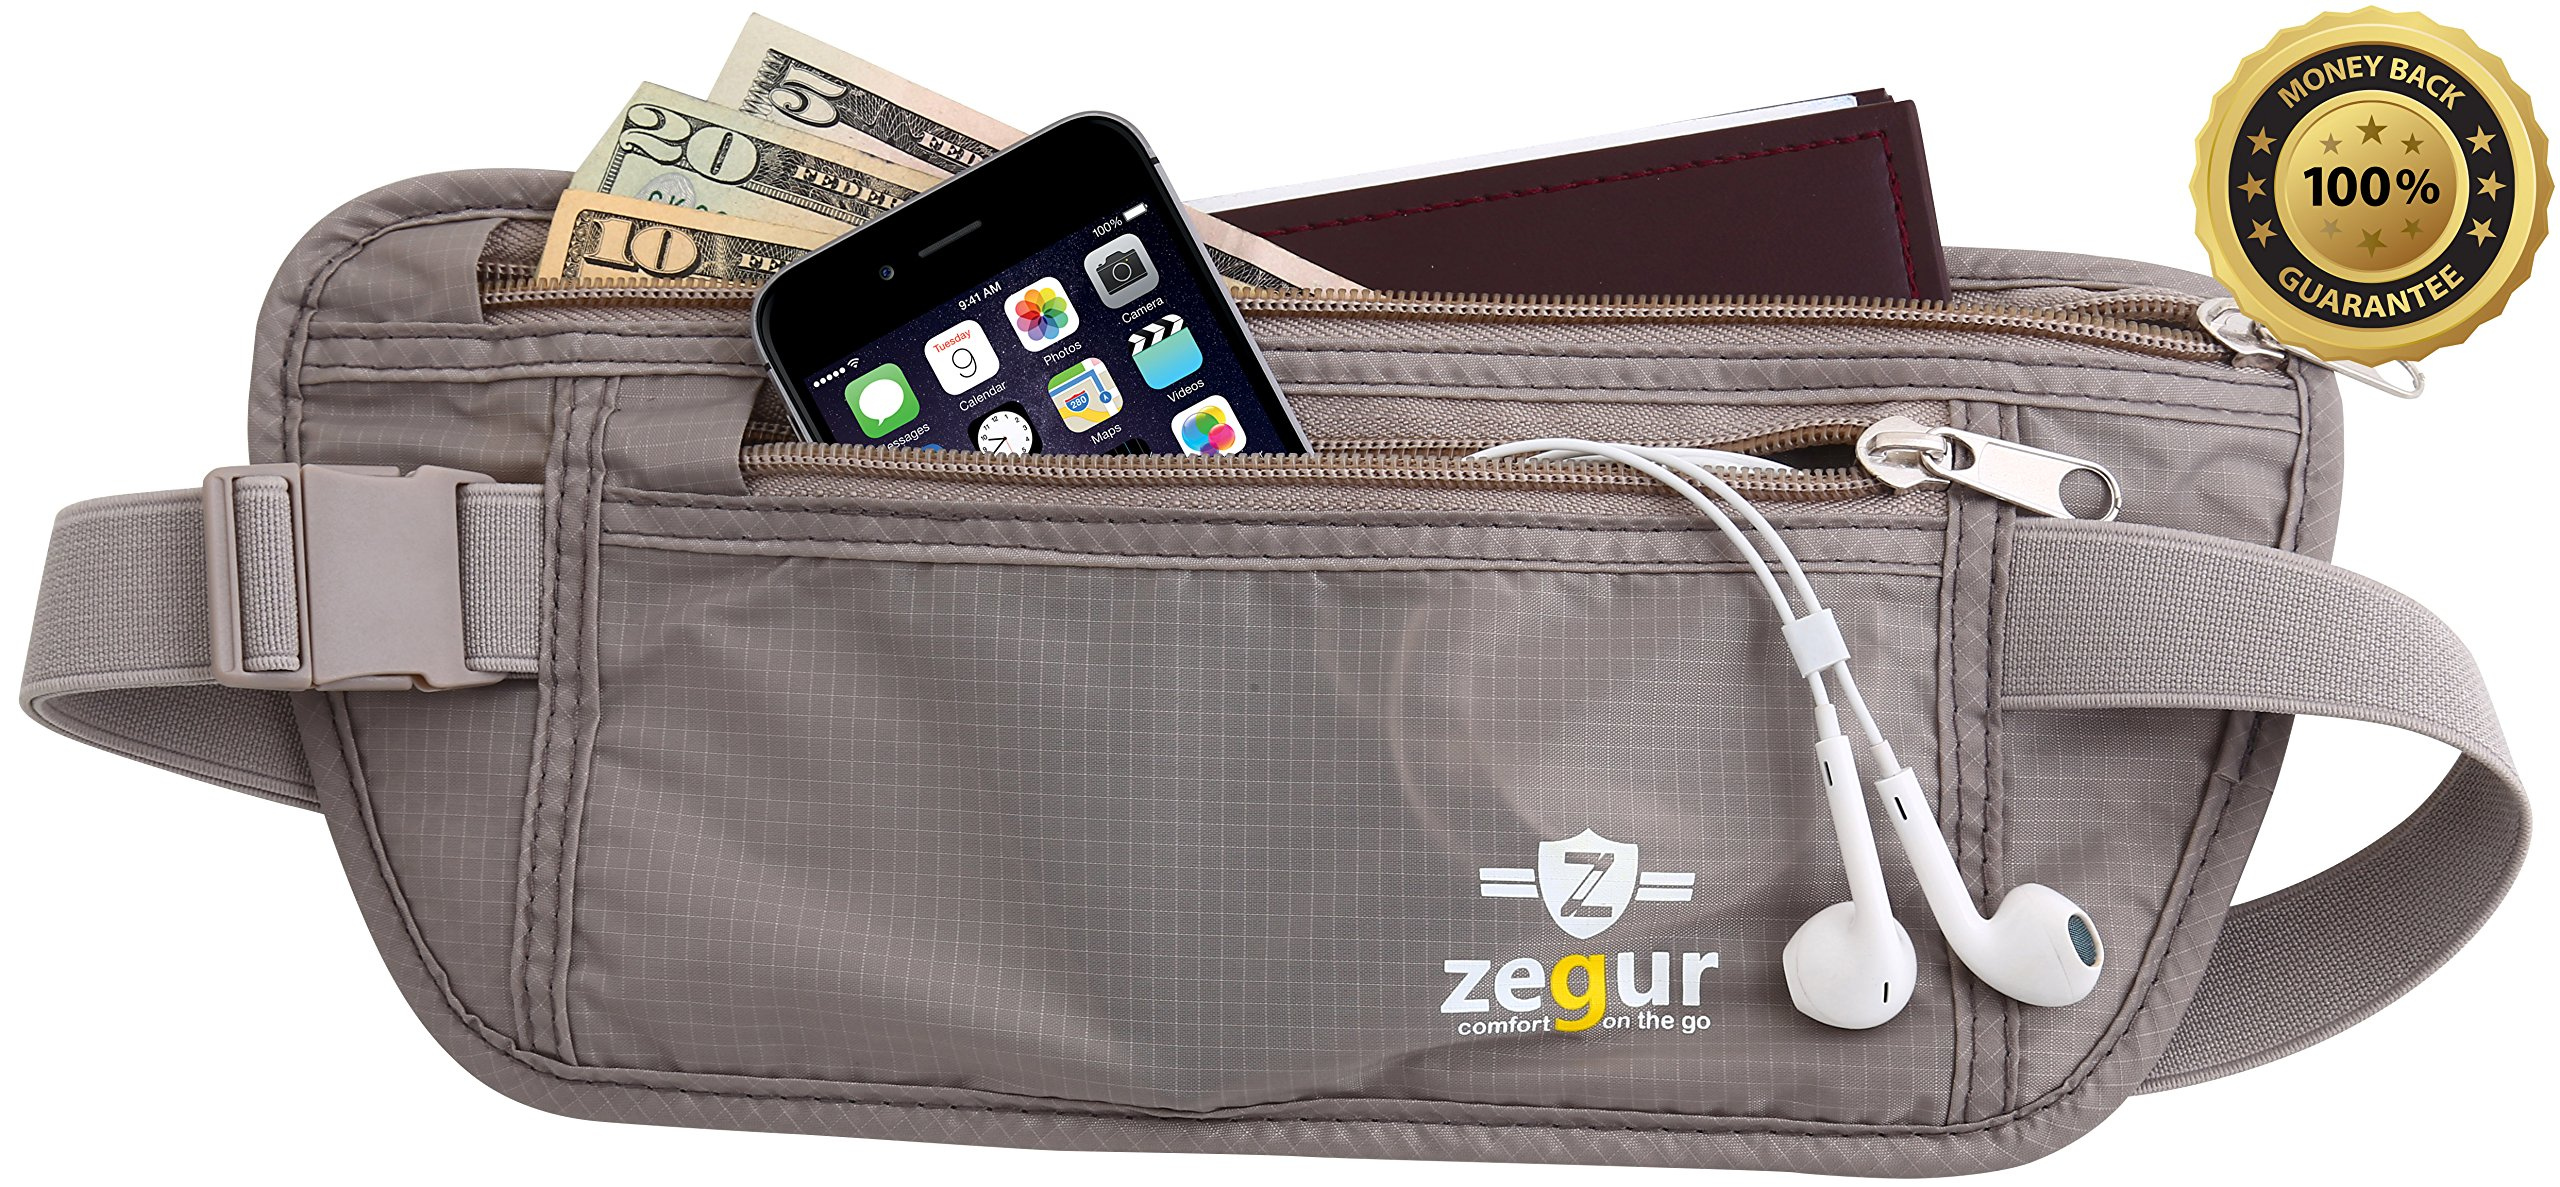 SUPER SPECIAL Zegur Tm HIGH QUALITY MONEY BELT Lightweight Undercover Waist Pouch - Best to Protect Yourself From Travel Theft - Wallet Stash Made with Special Mesh Backing for BREATHABLE & MOISTURE-WICKING for MAXIMUM COMFORT - Elastic Belt with ADJUSTAB